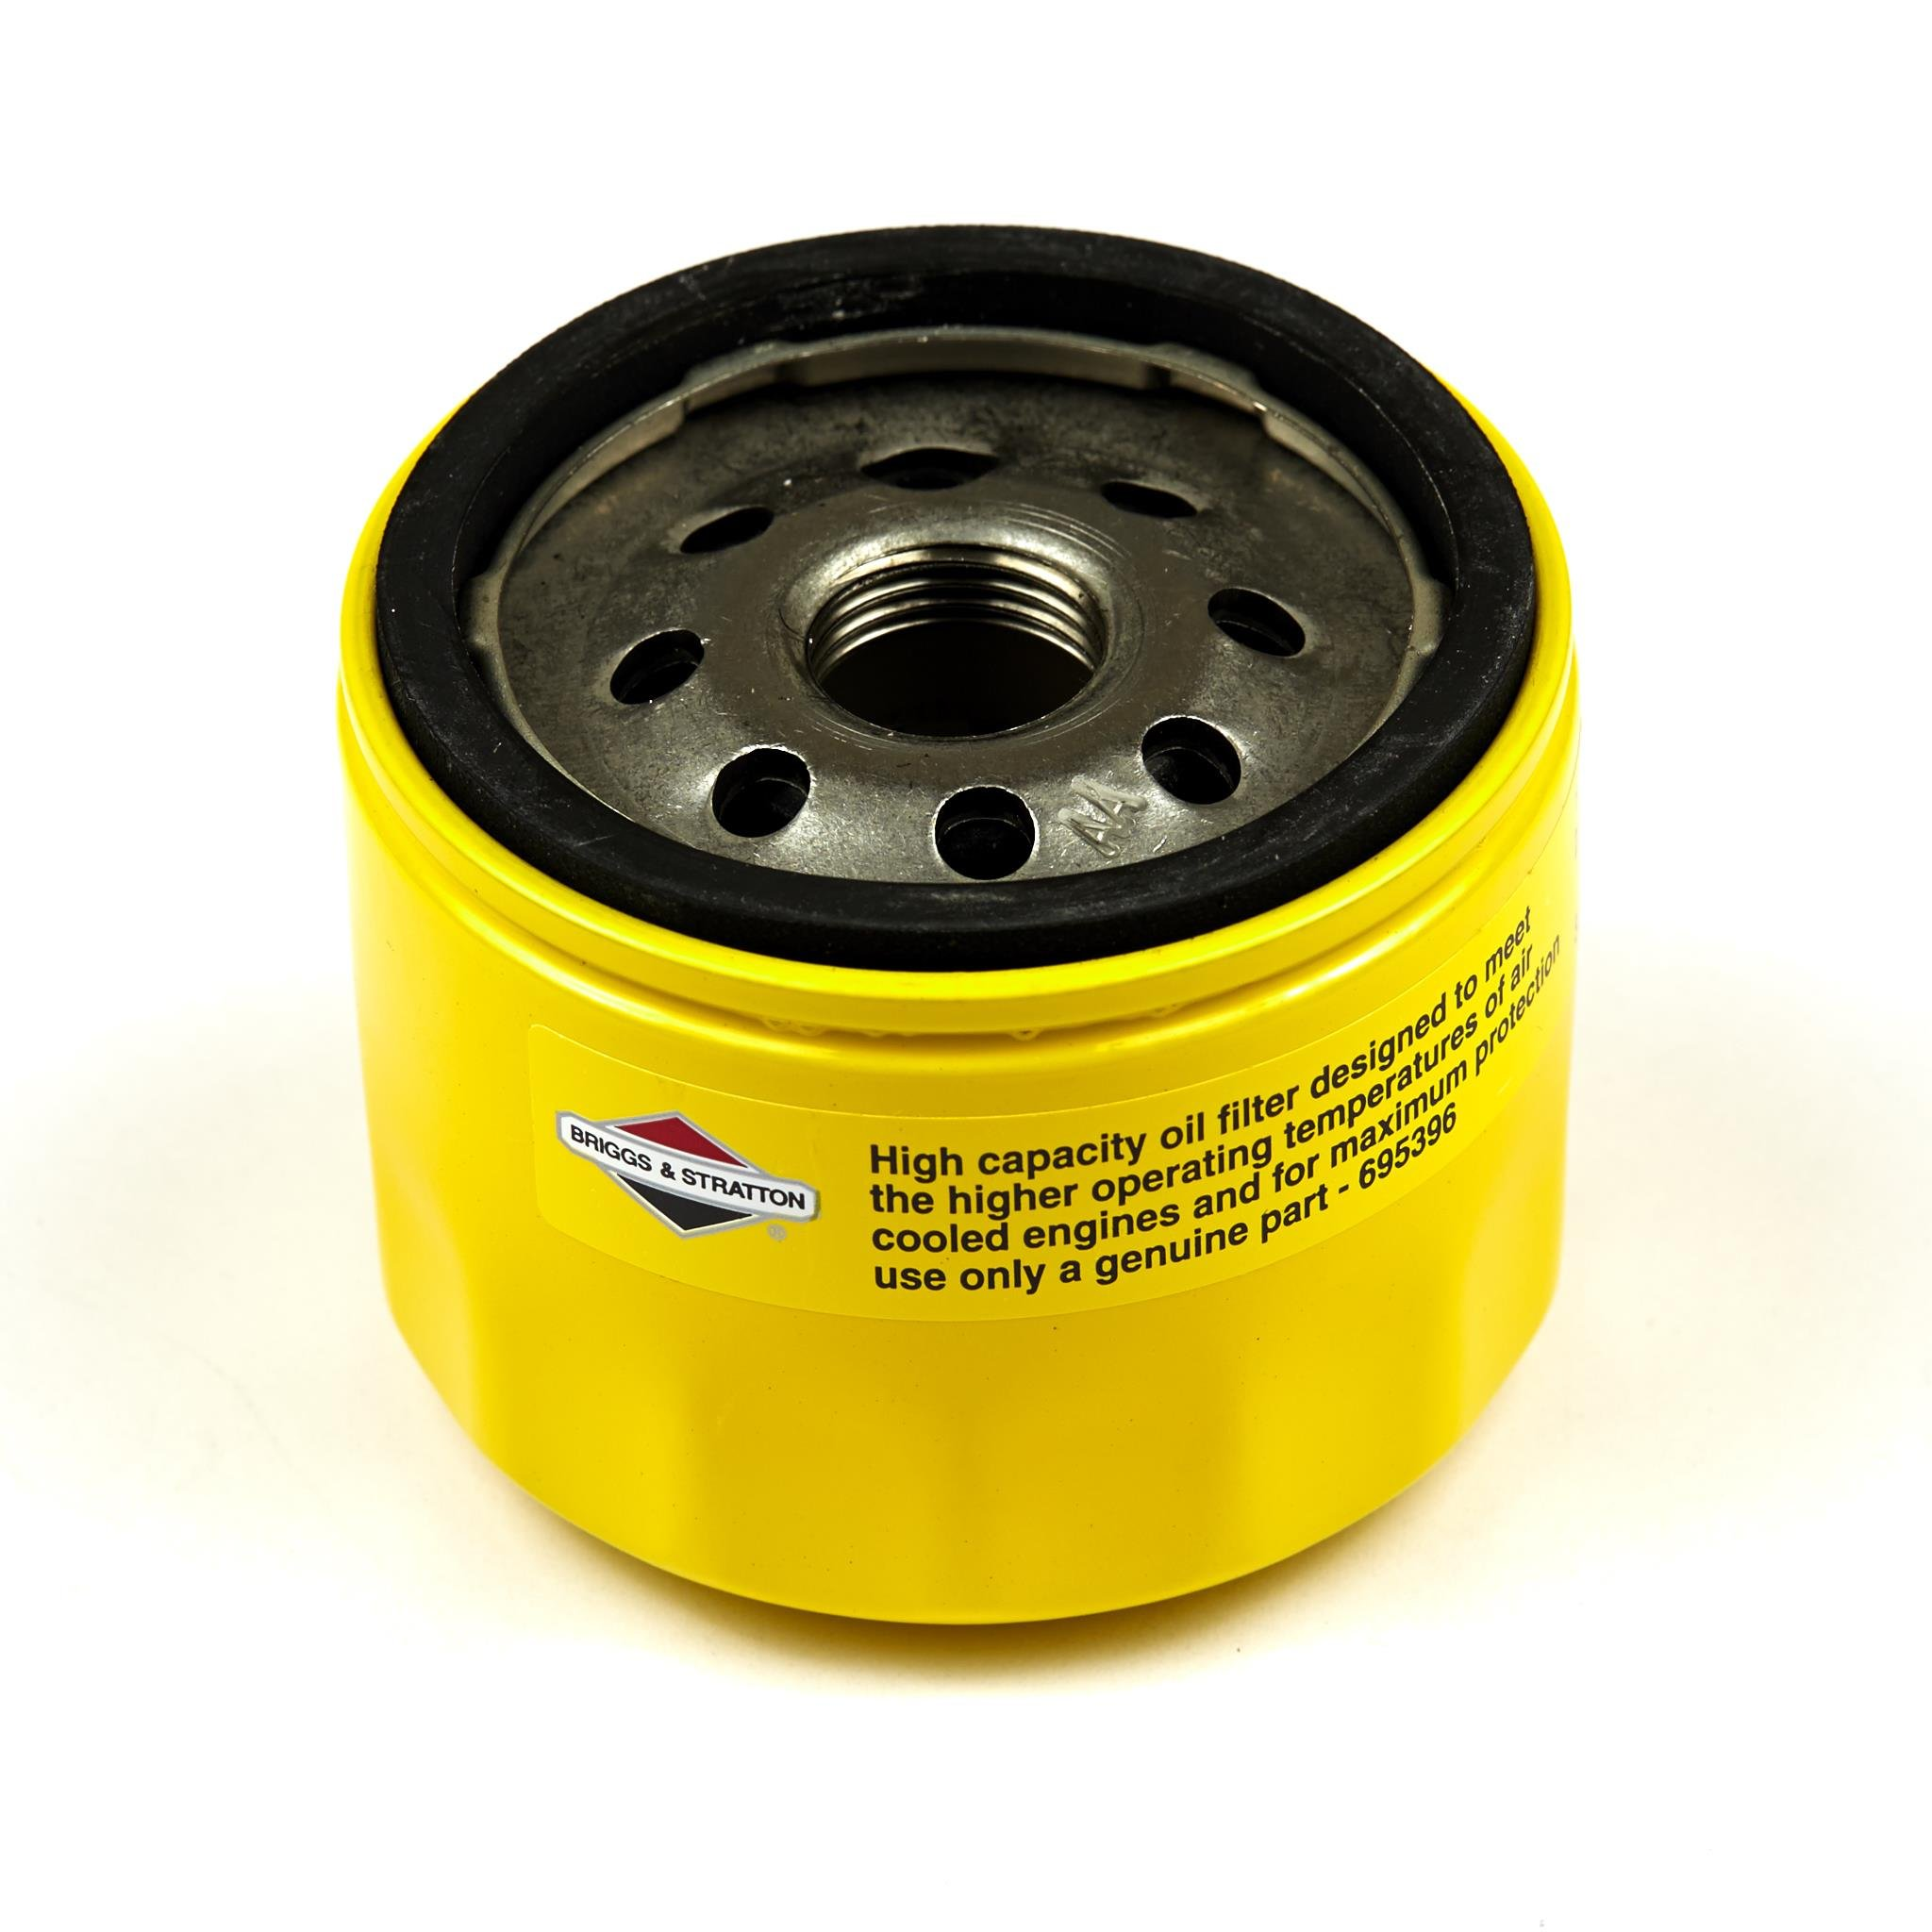 Briggs & Stratton 696854 Oil Filter Replacement for Models 79589, 92134GS, 92134 and 695396 by Briggs & Stratton